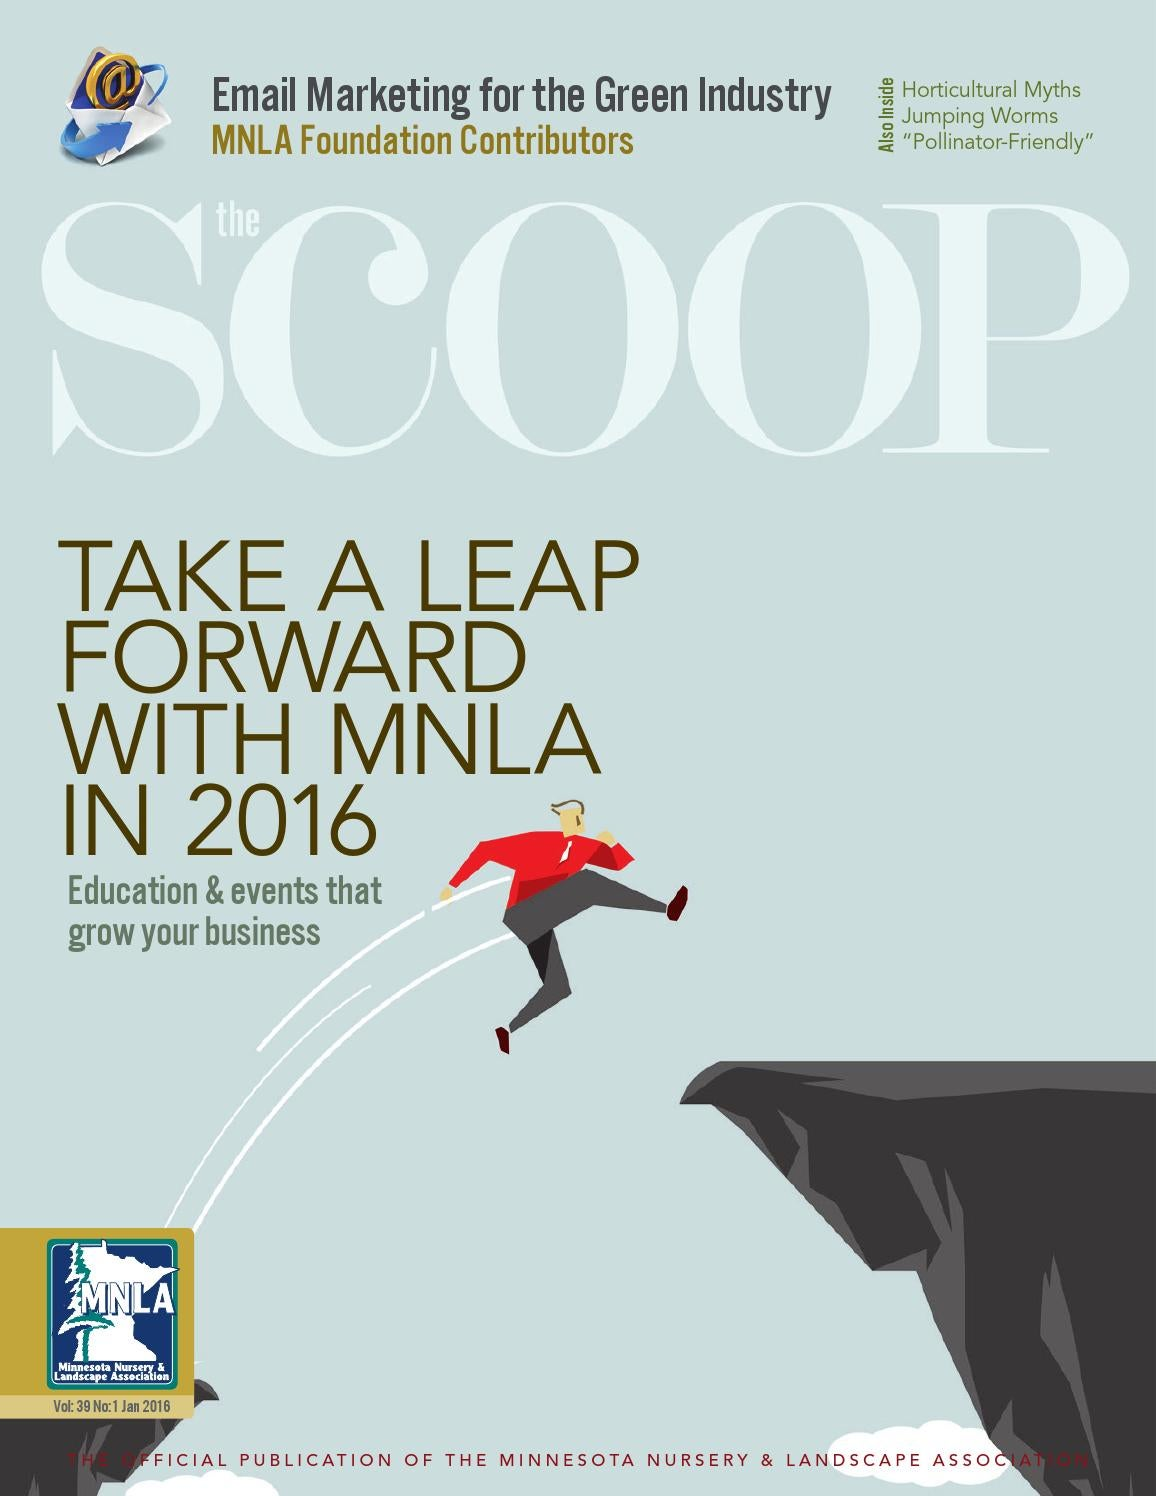 The Scoop Online - January 2016